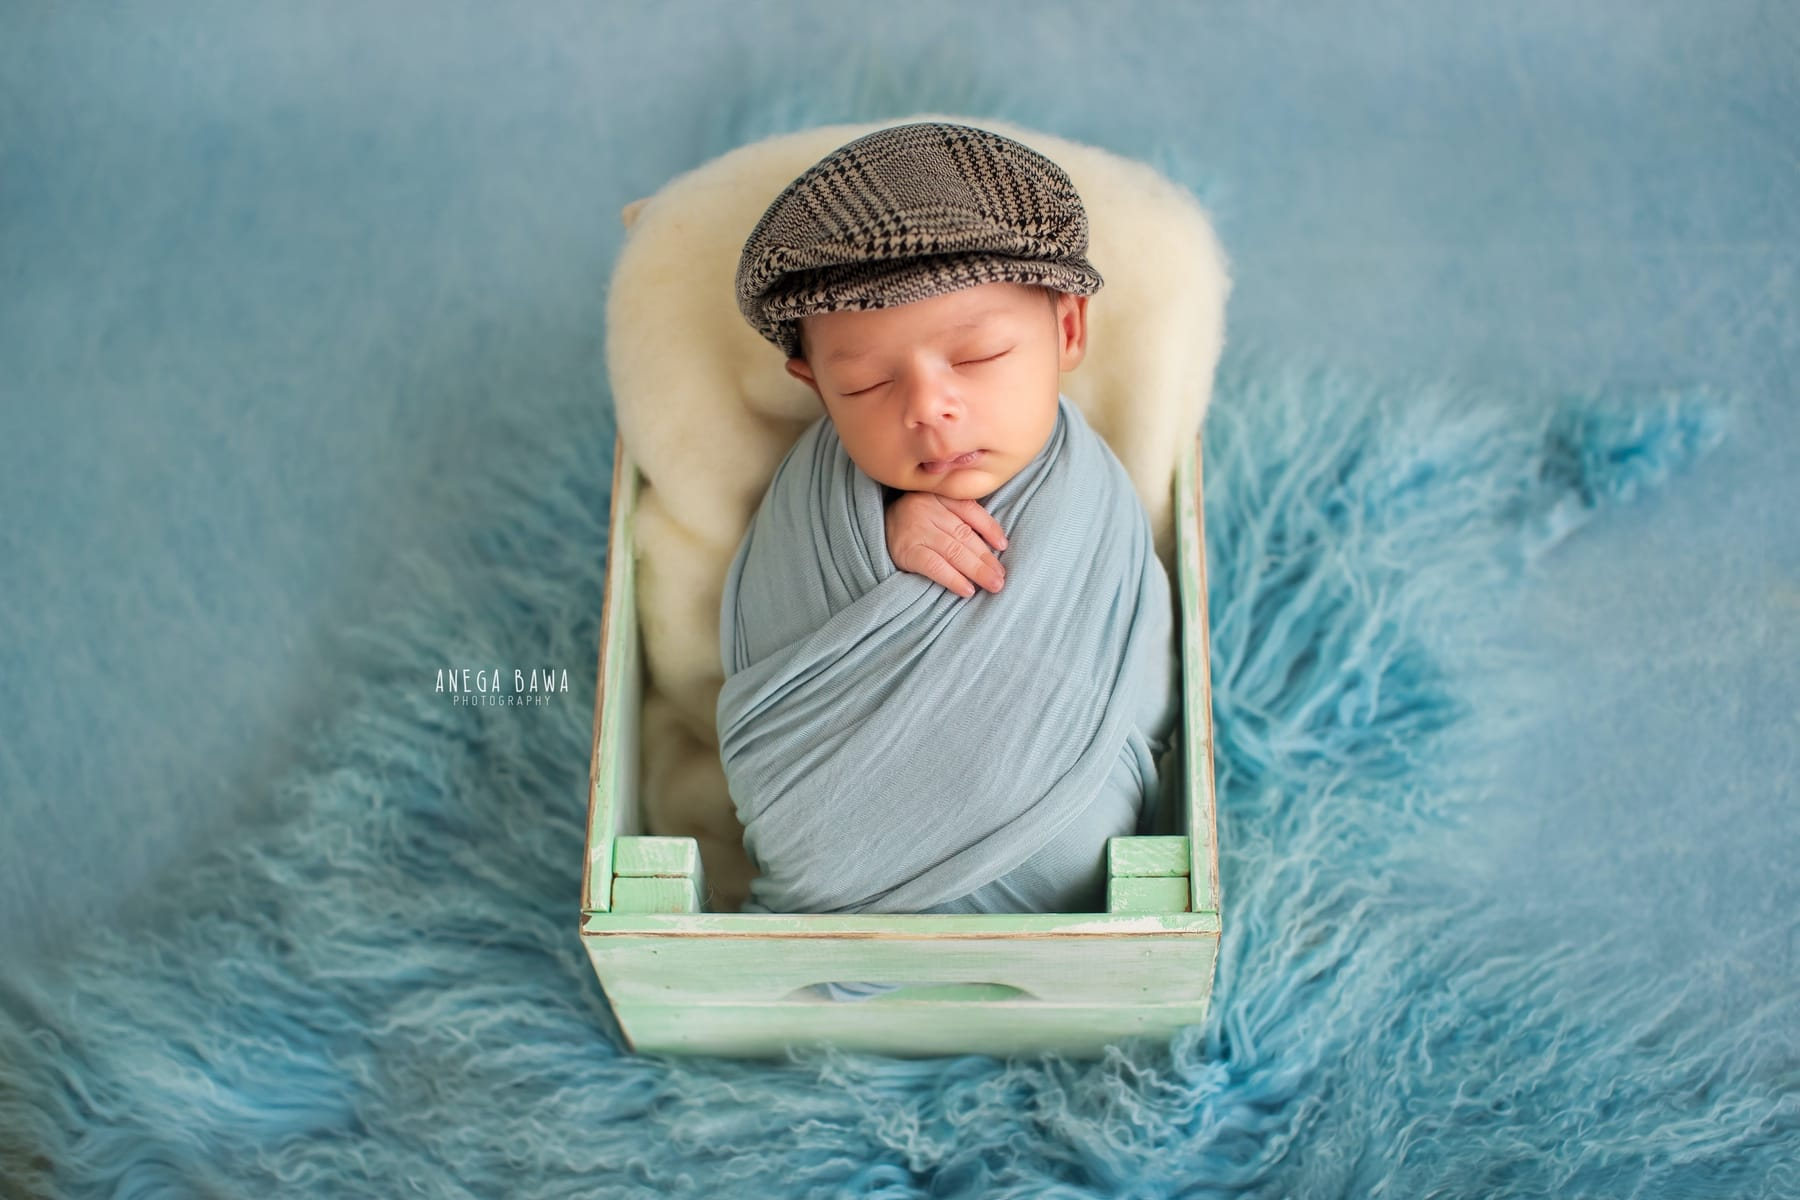 blue newborn photography delhi 19 days baby boy photoshoot gurgaon anega bawa